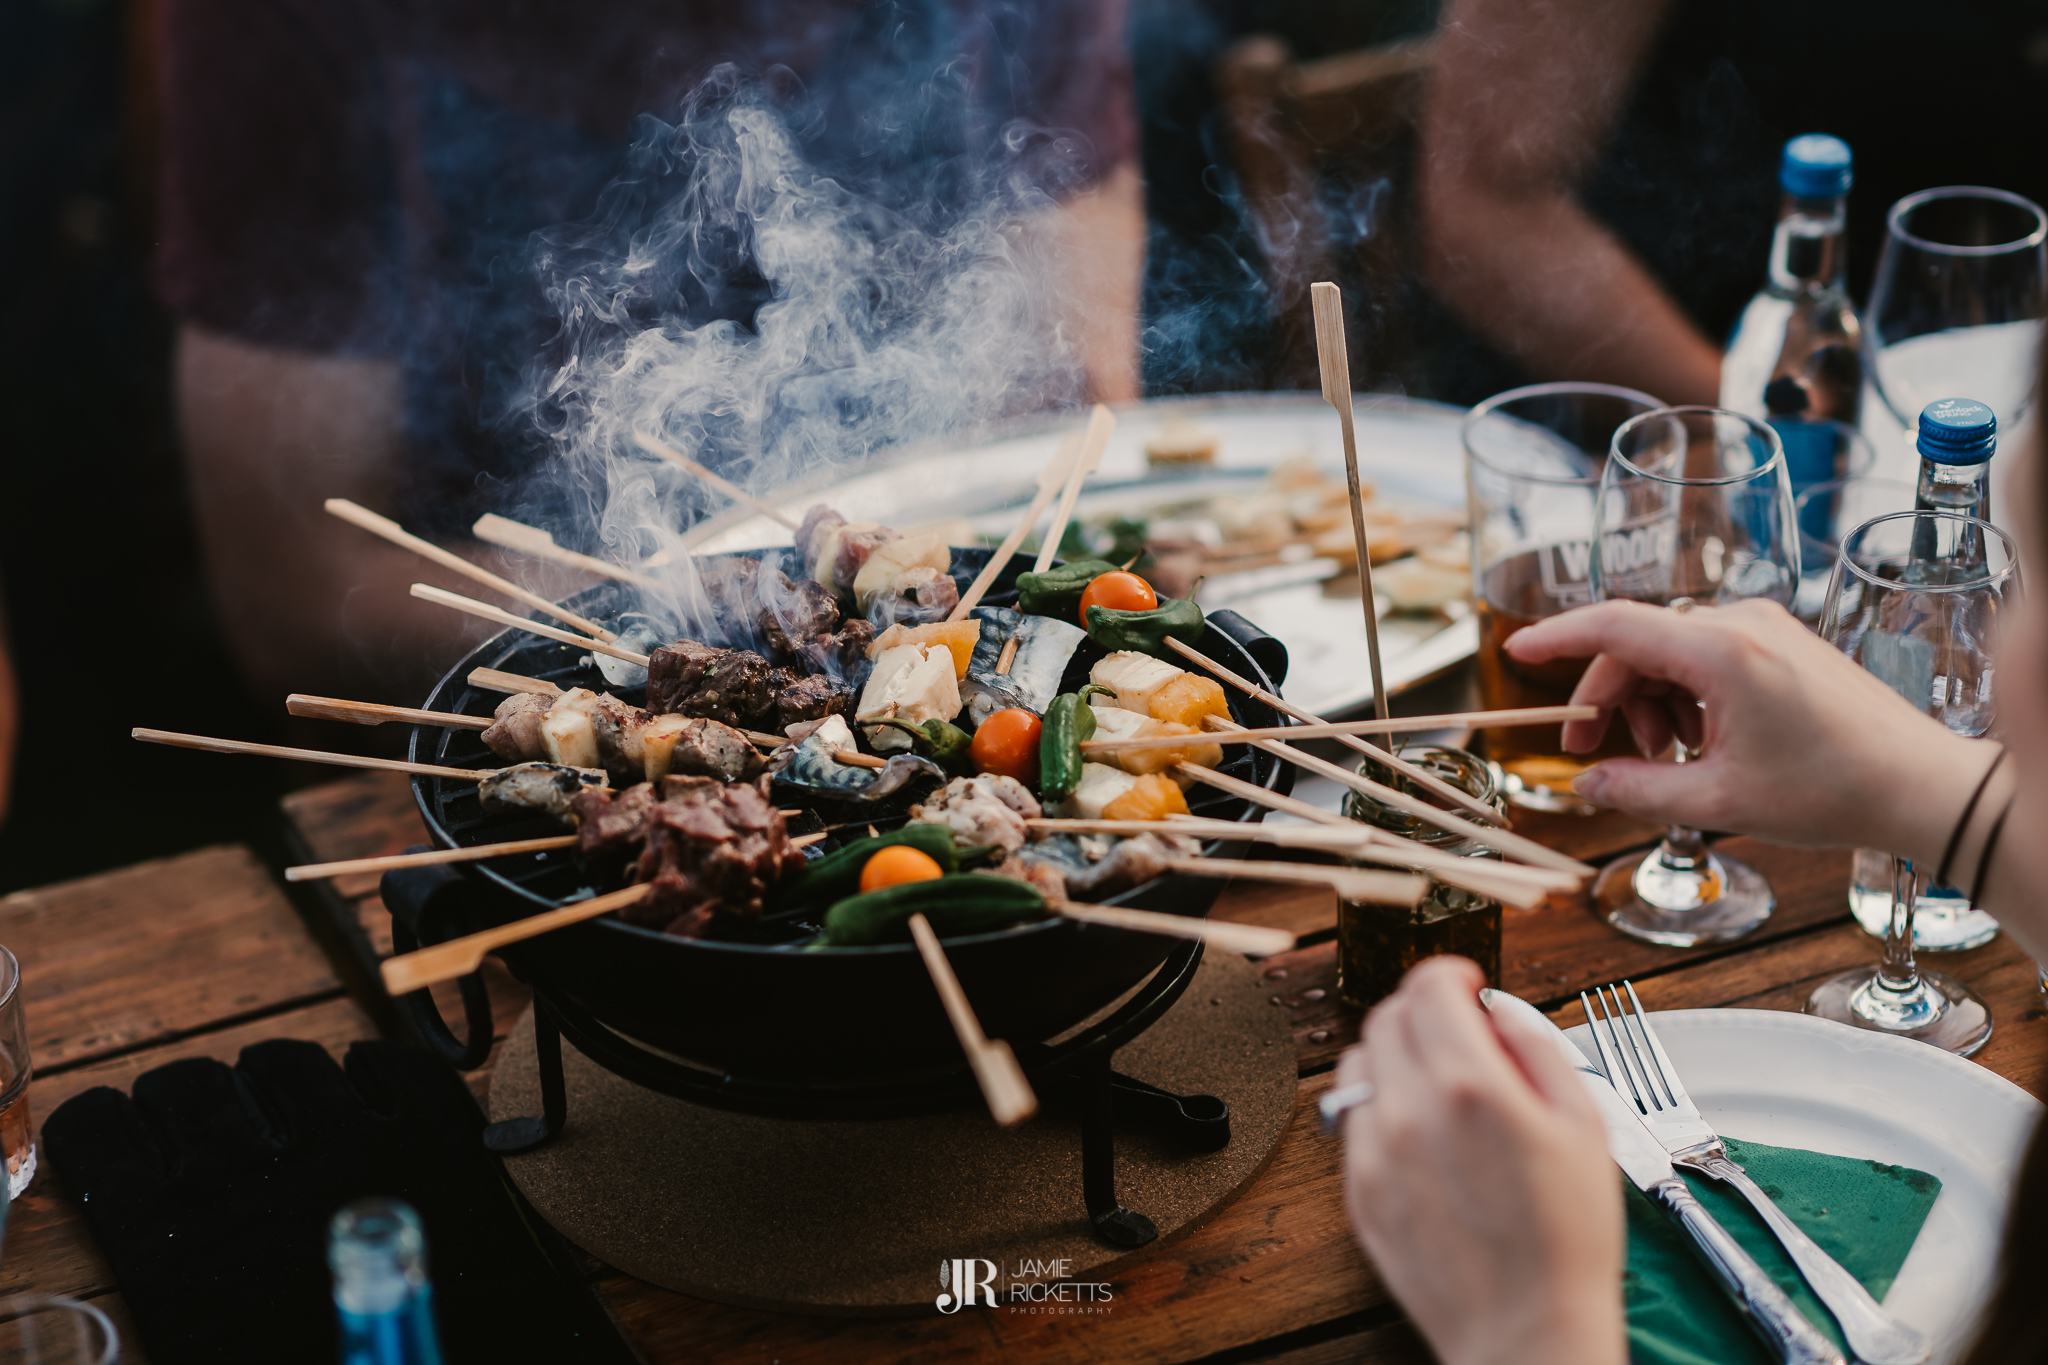 BBQ BANQUET NIGHT-28.06.2019-JR-SM-37.JPG